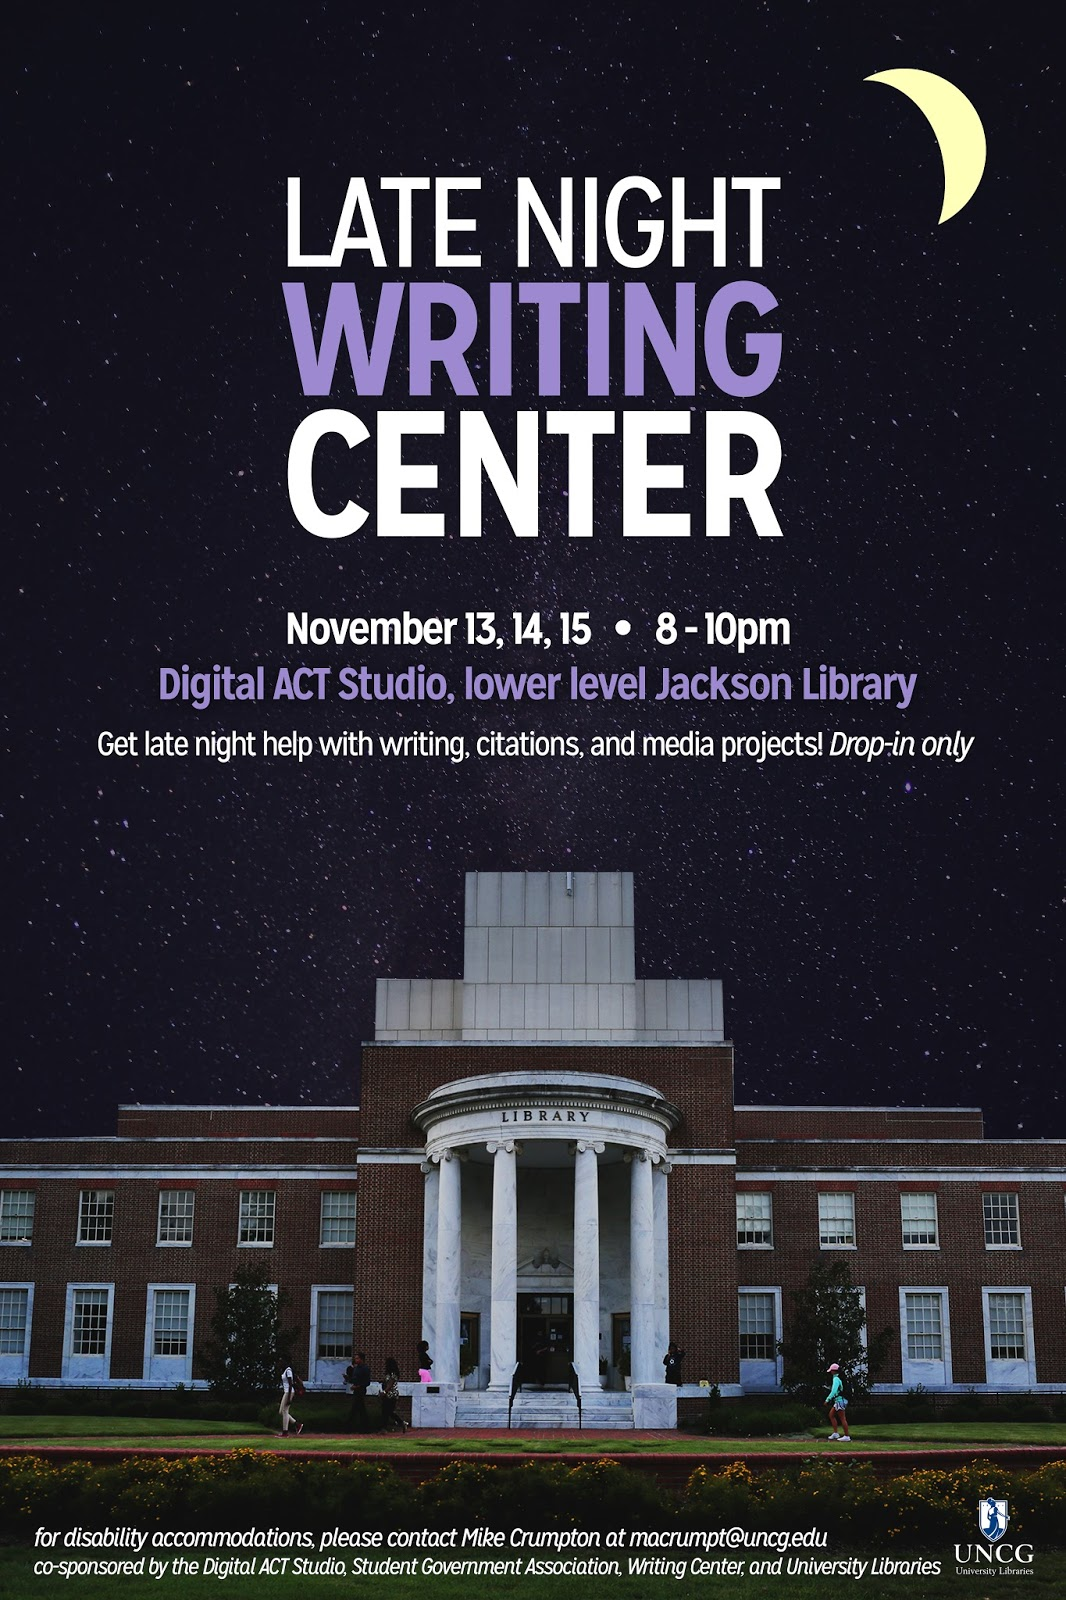 uncg writing center Having trouble logging in enter your email address below and then click change password the system will email you with instructions for changing your password.